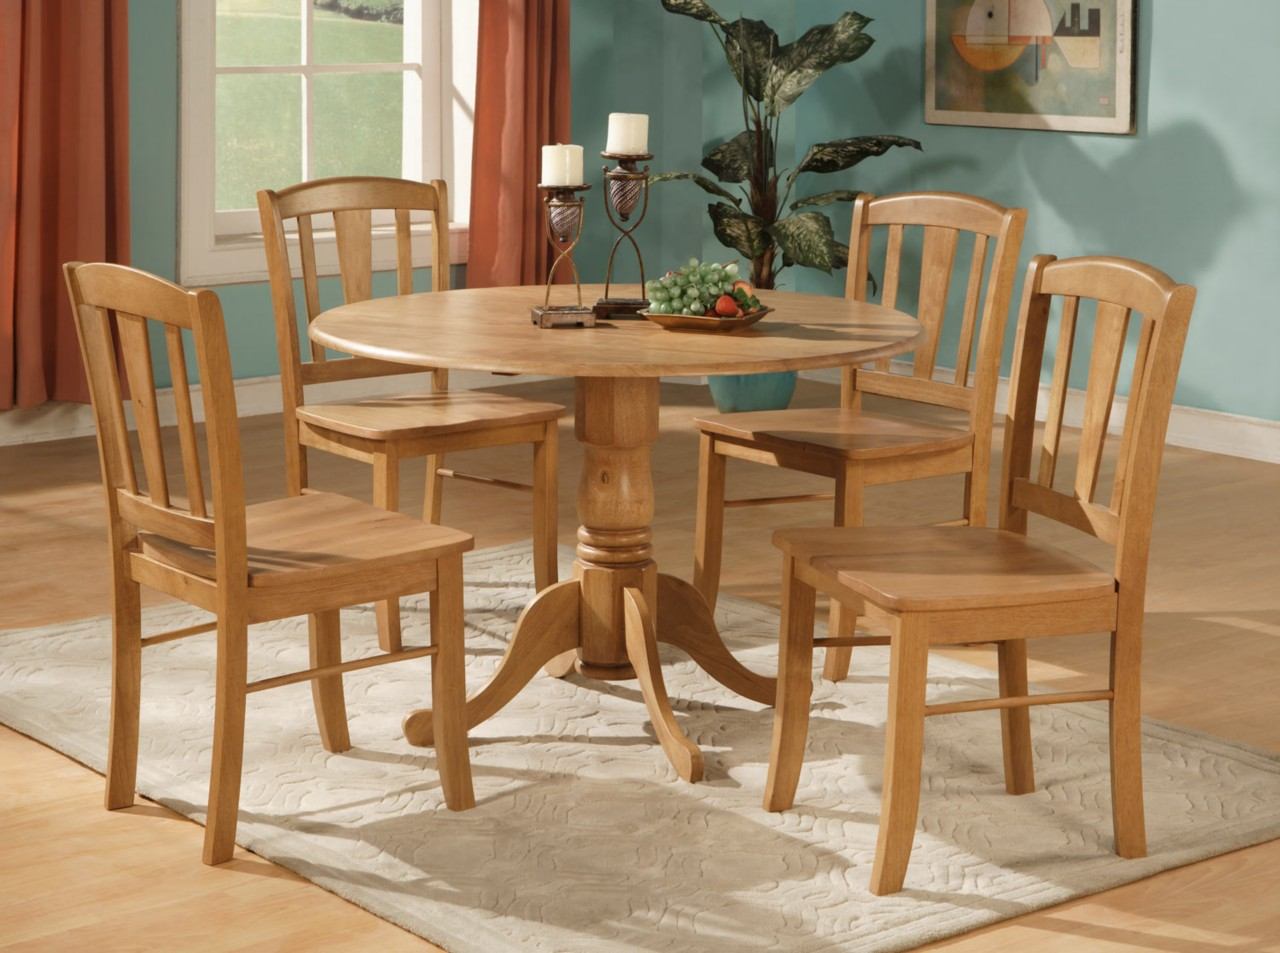 Wood Dinette Tables ~ Pc round dinette kitchen dining set table and chairs ebay